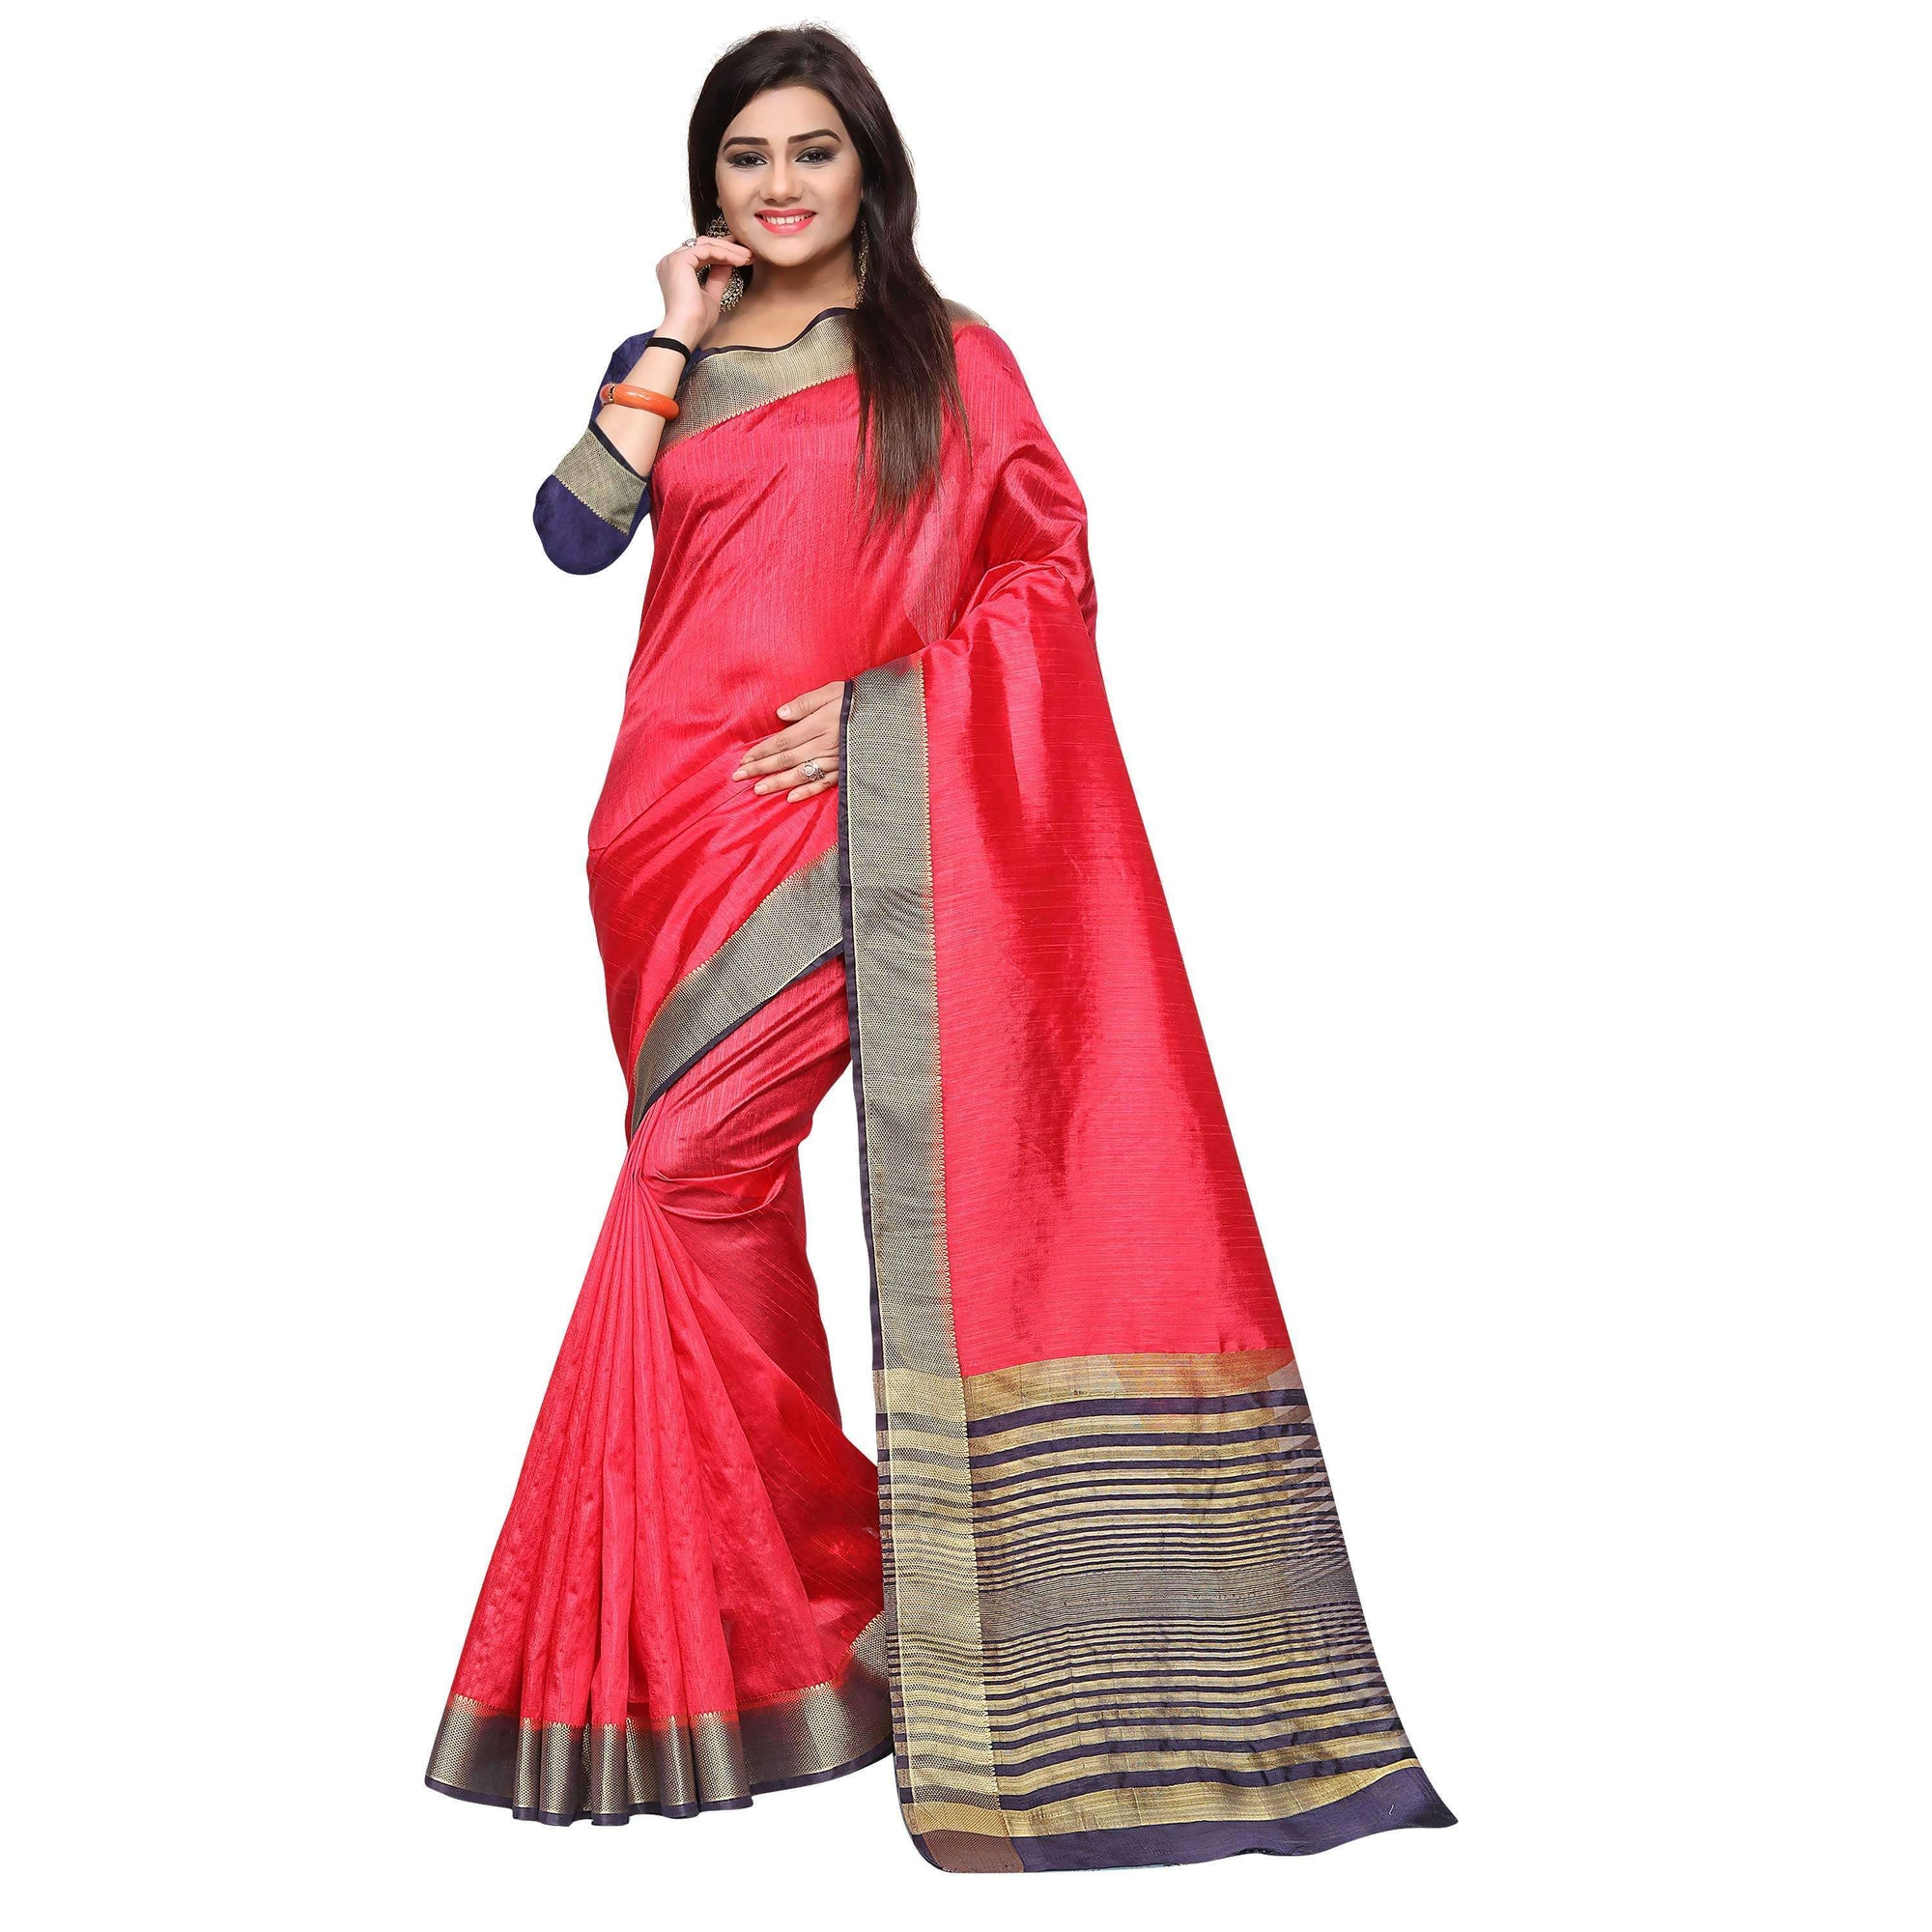 arars kanjivaram art silk saree with blouse saree colour strawberry (330)